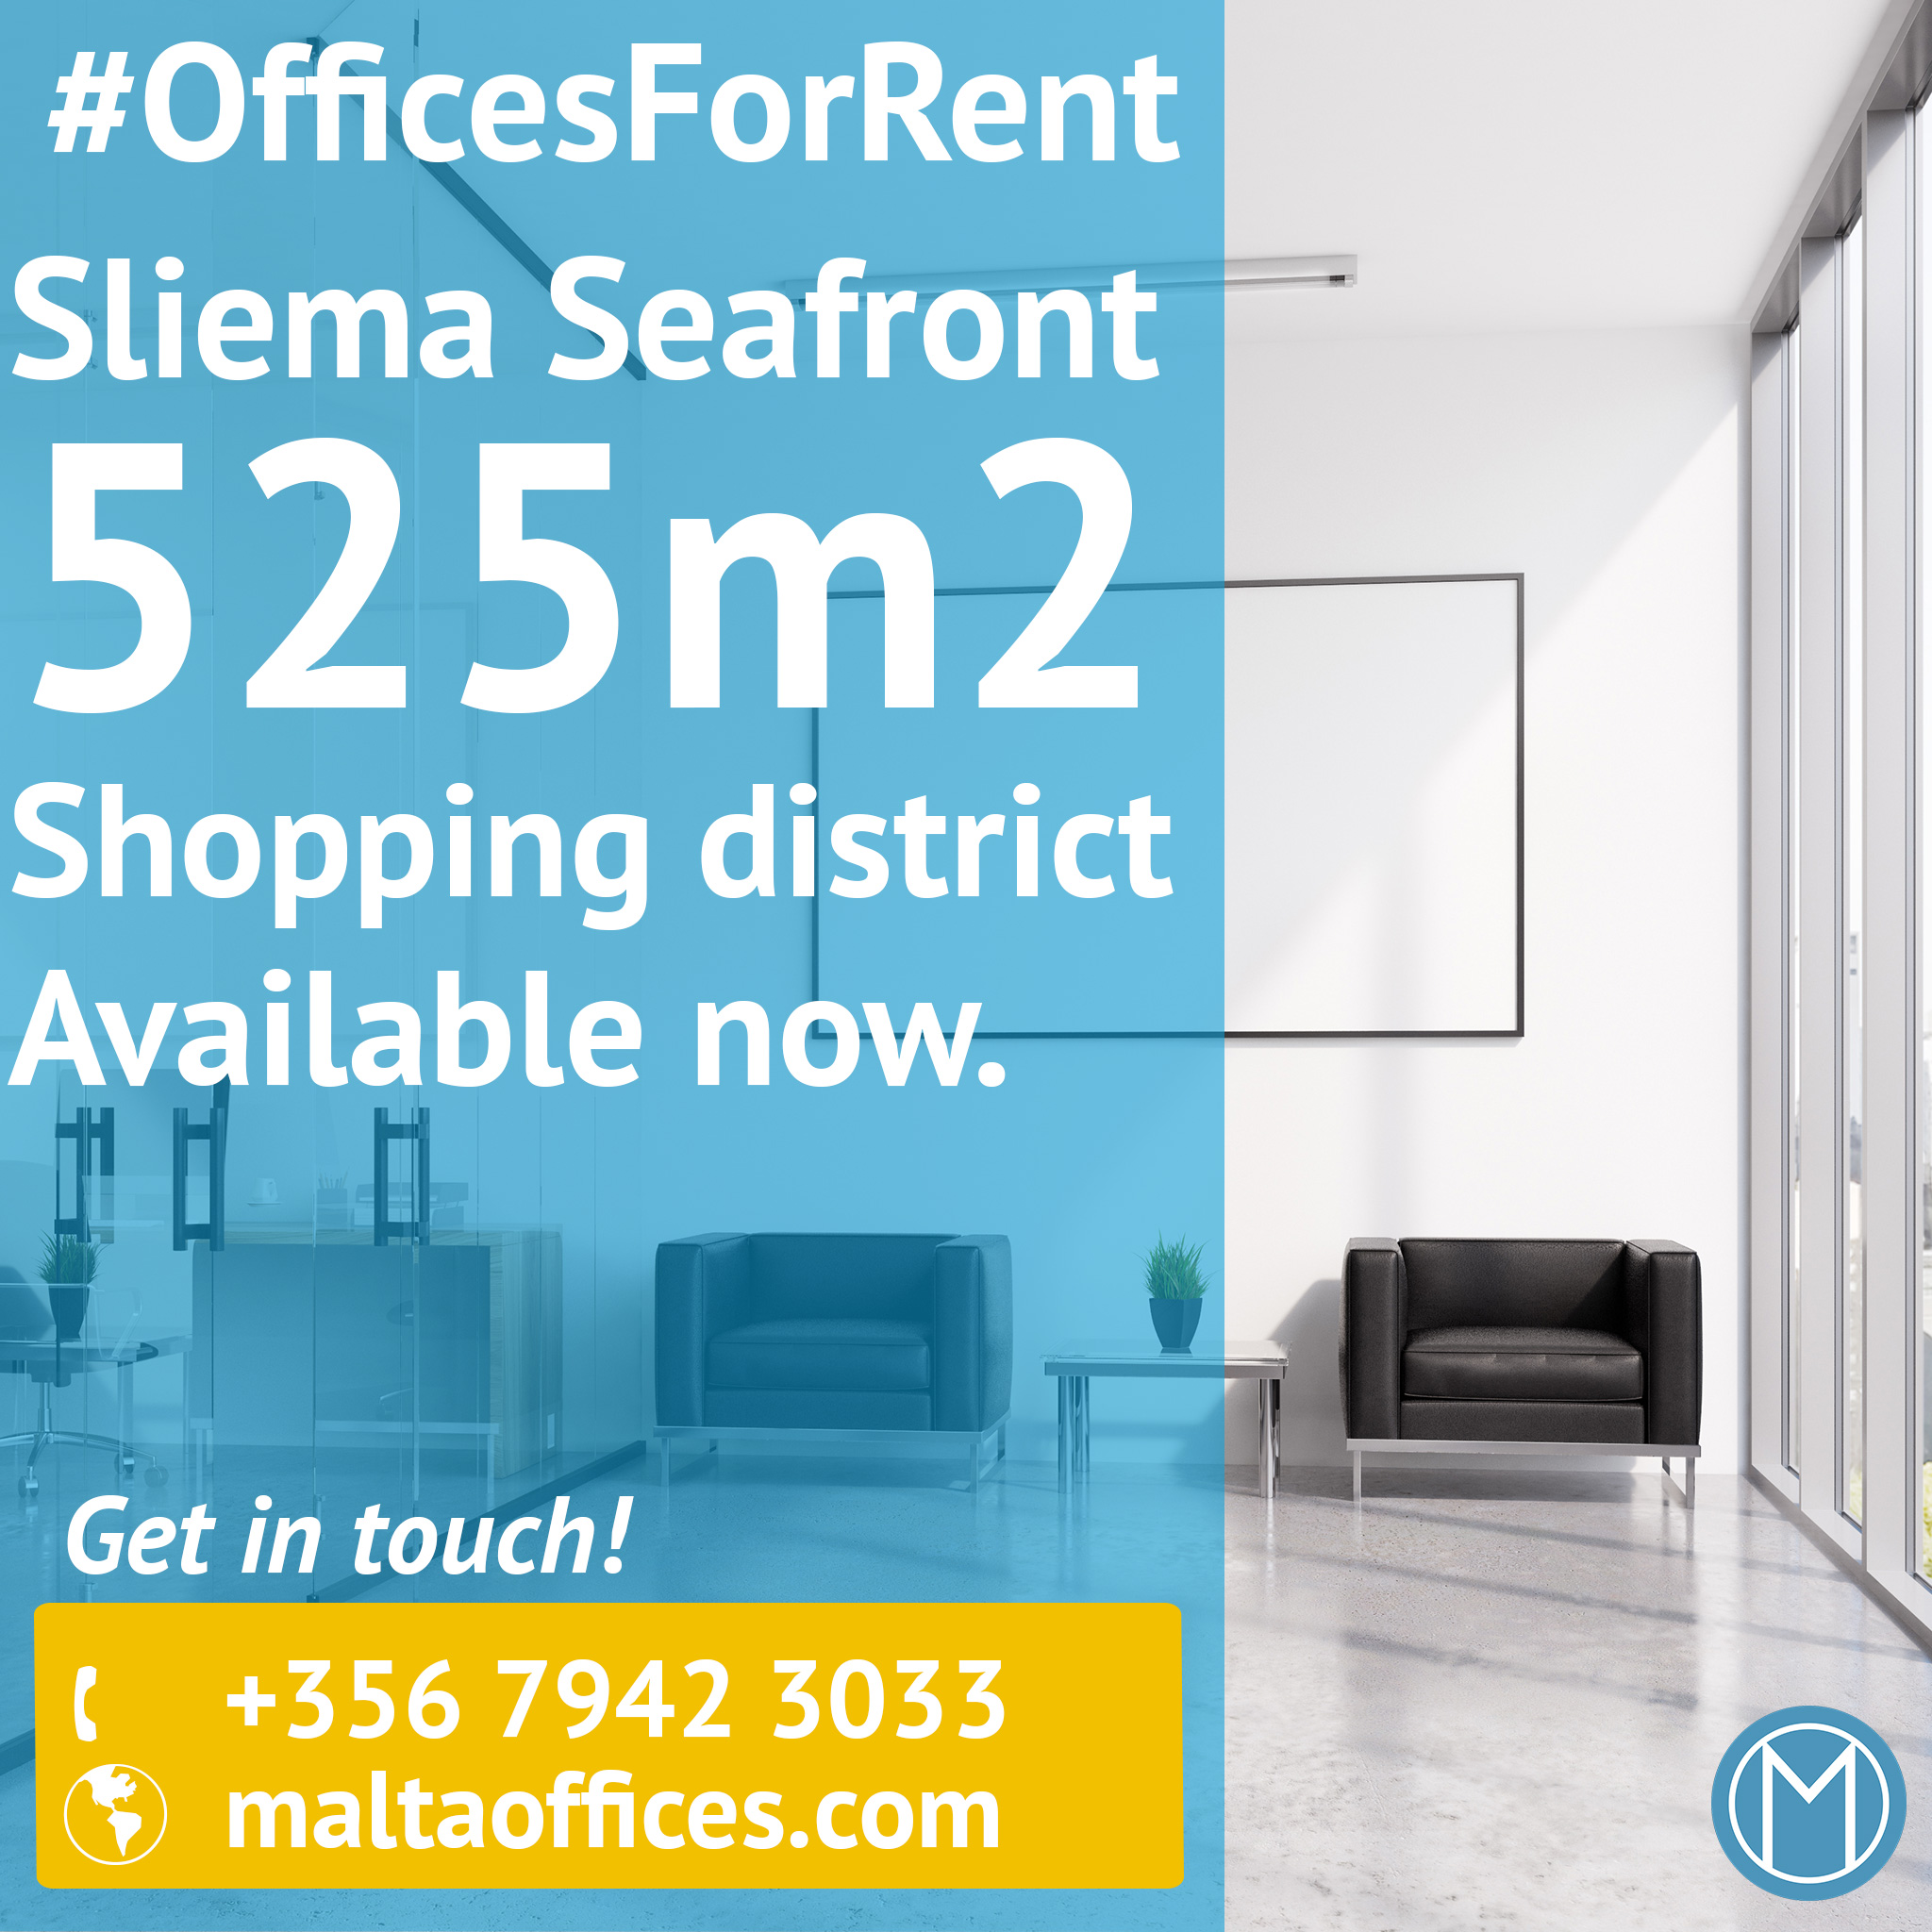 Office for rent at Sliema